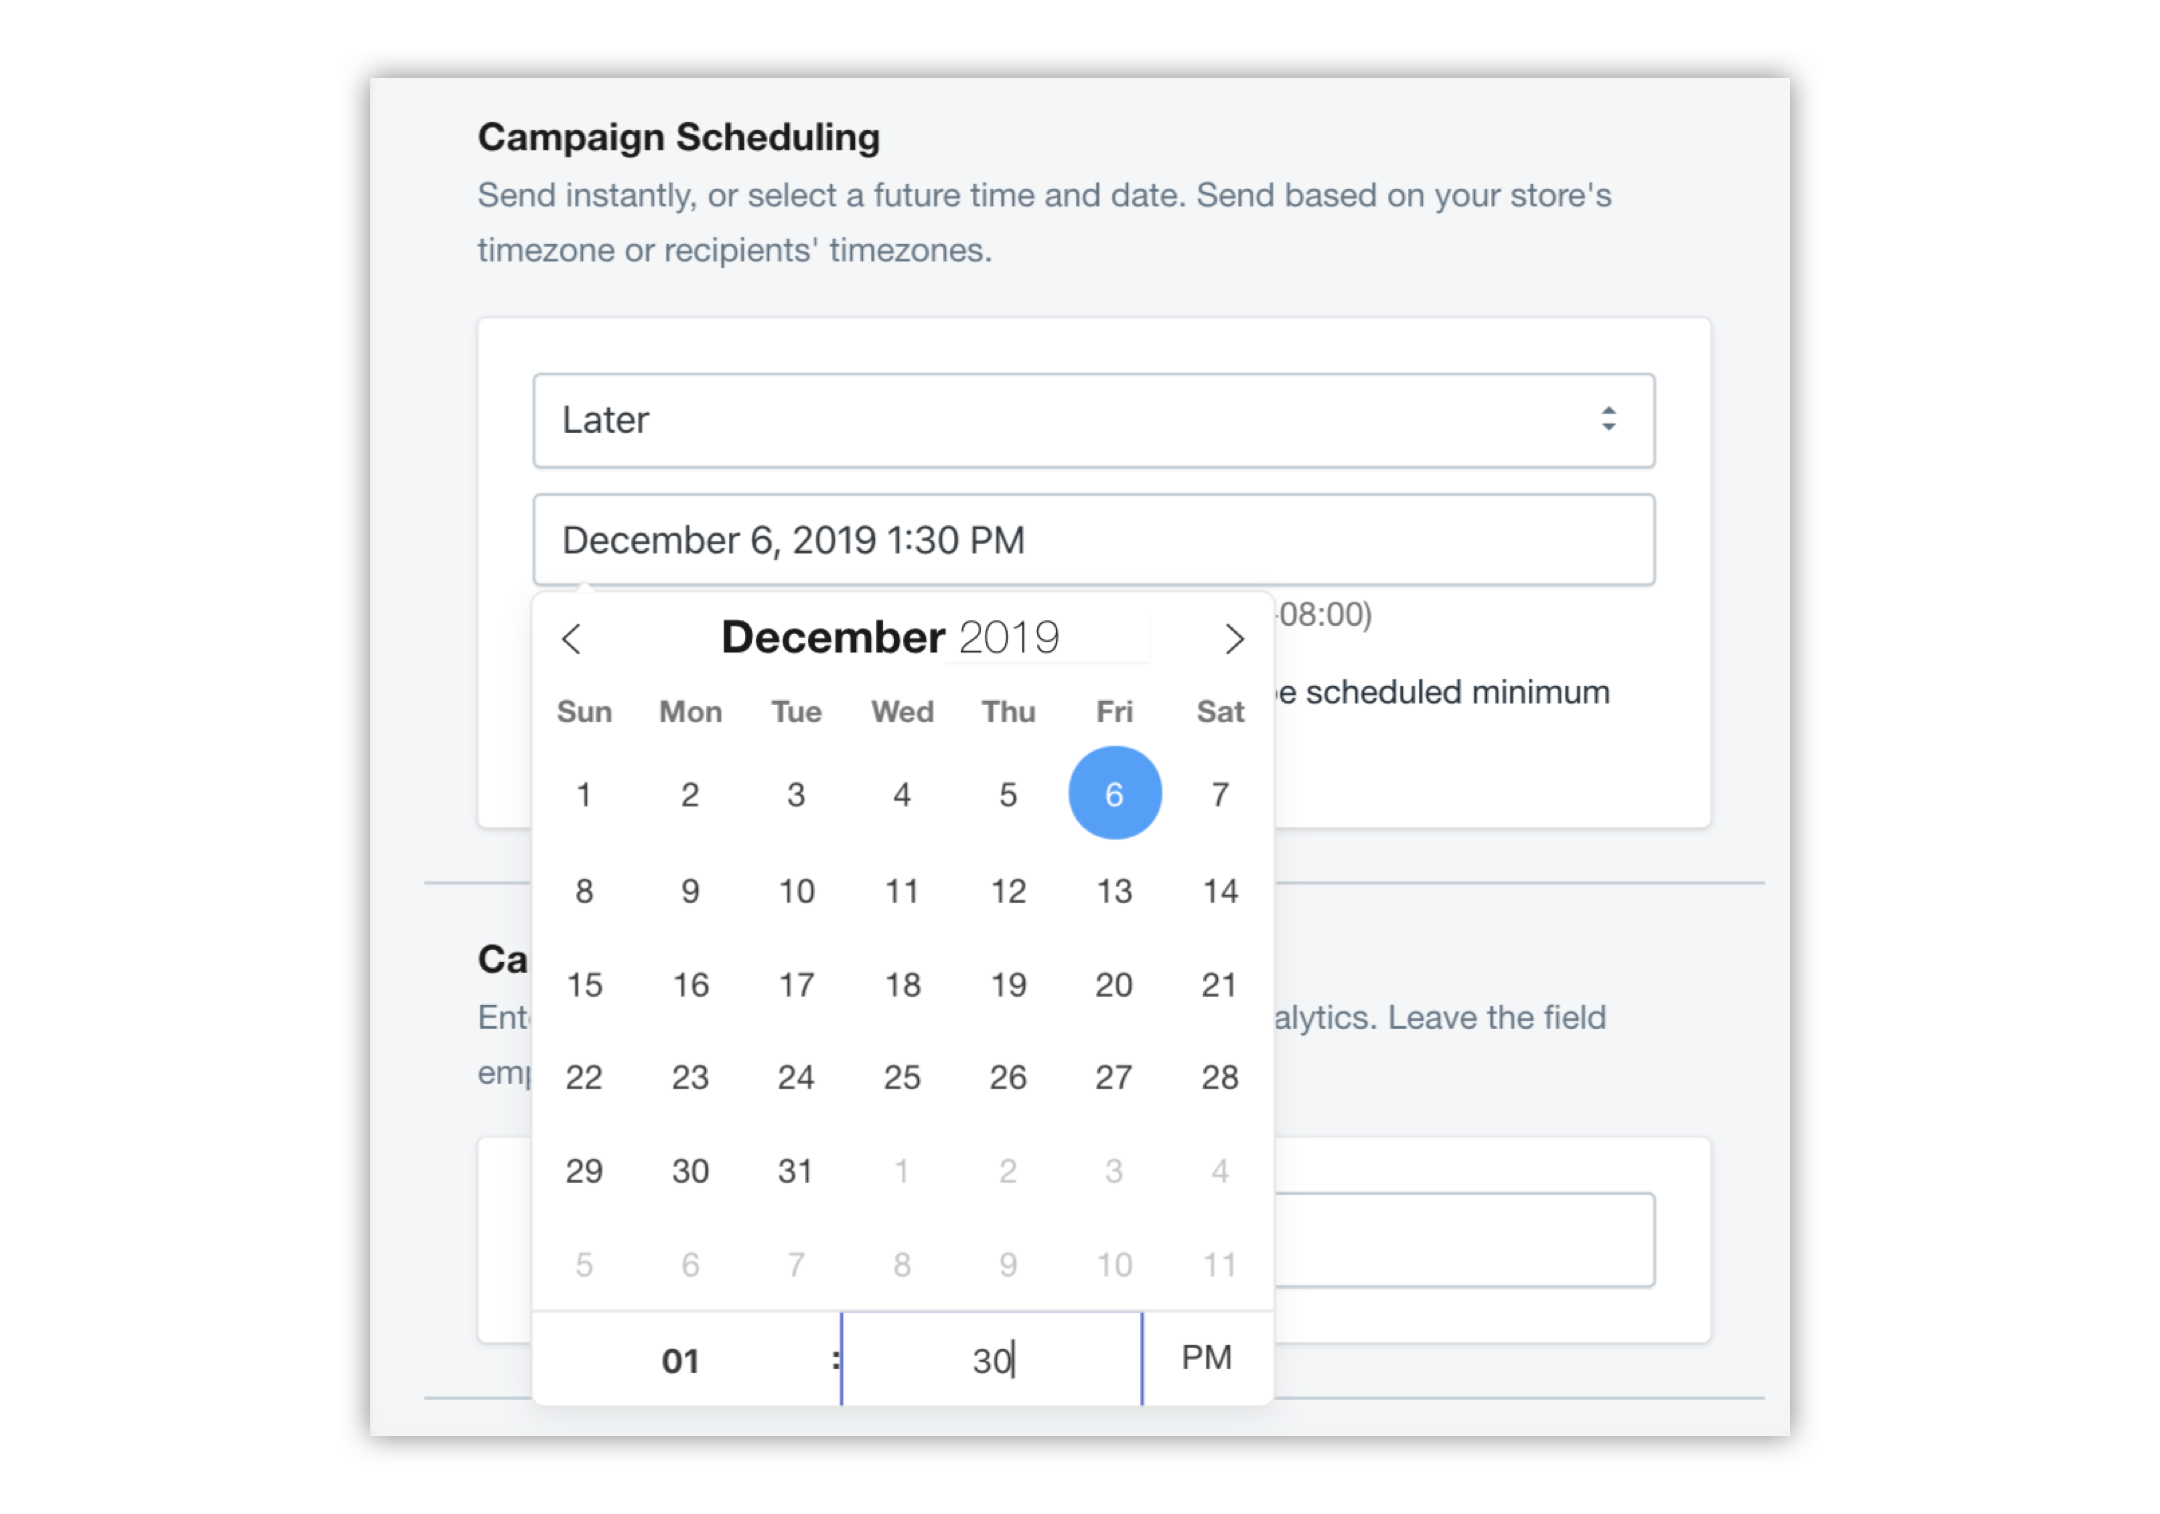 3-campaign_scheduling-smsbump